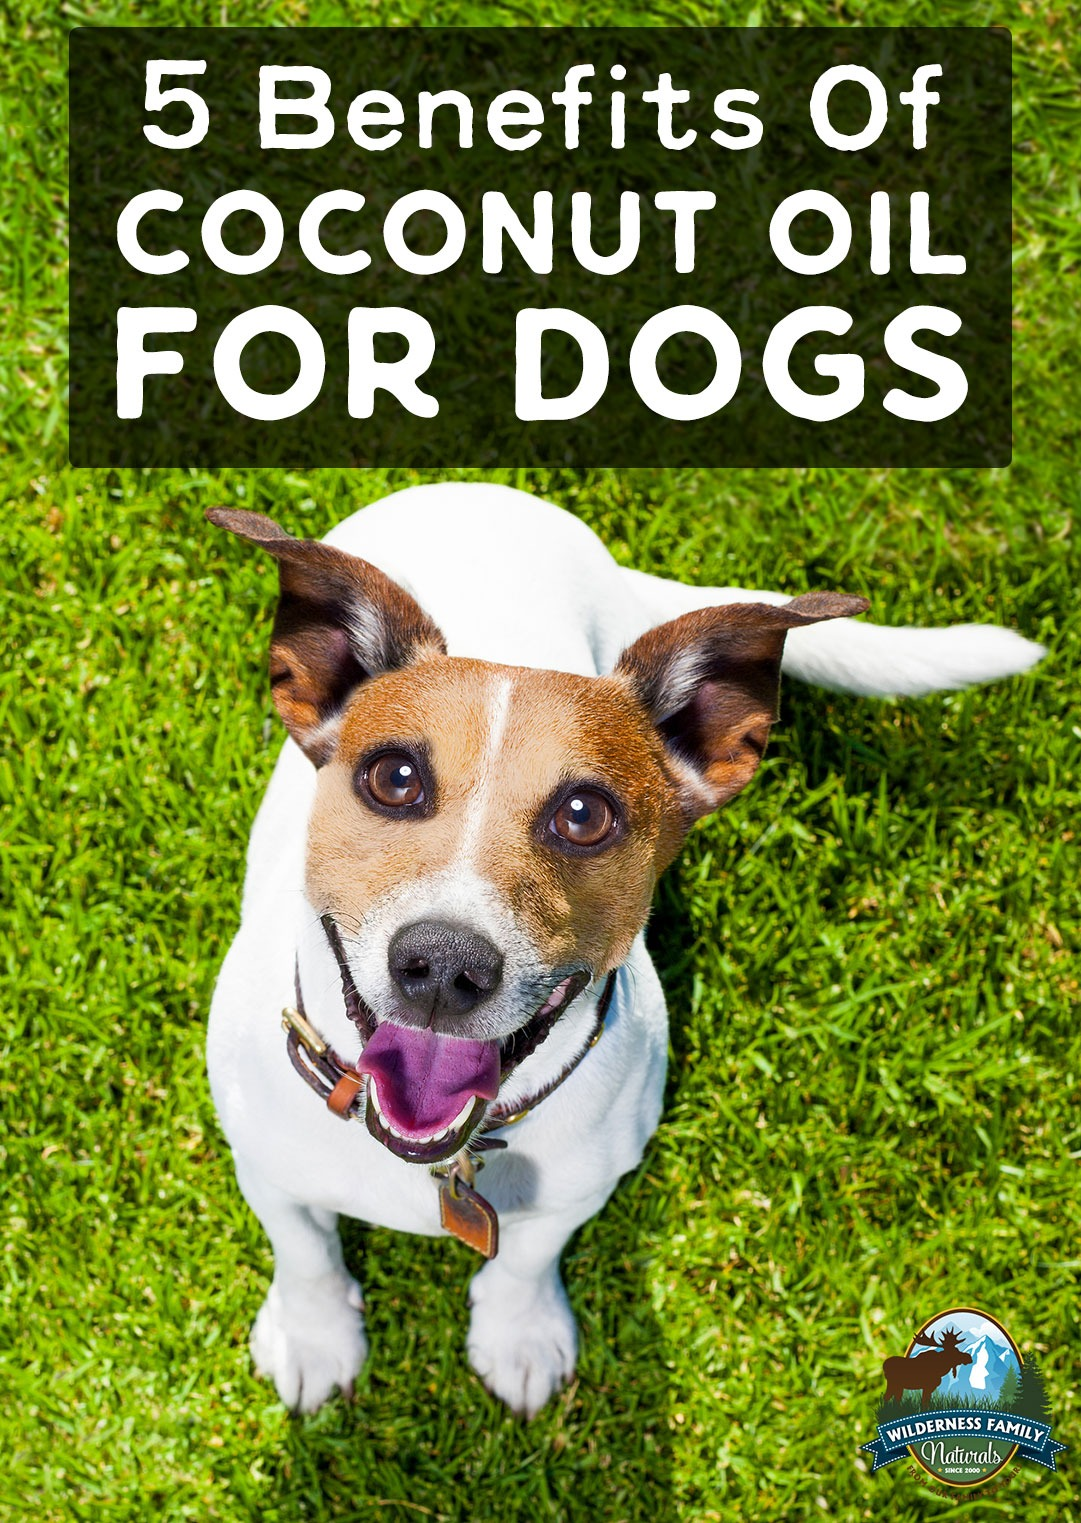 5 Benefits Of Coconut Oil For Dogs | Coconut oil may help maintain clean teeth, shiny fur, and overall good health for your beloved puppy. It's not a magic bullet, but it certainly can add to their overall well-being. Learn about the 5 benefits of coconut oil for dogs! | WildernessFamilyNaturals.com